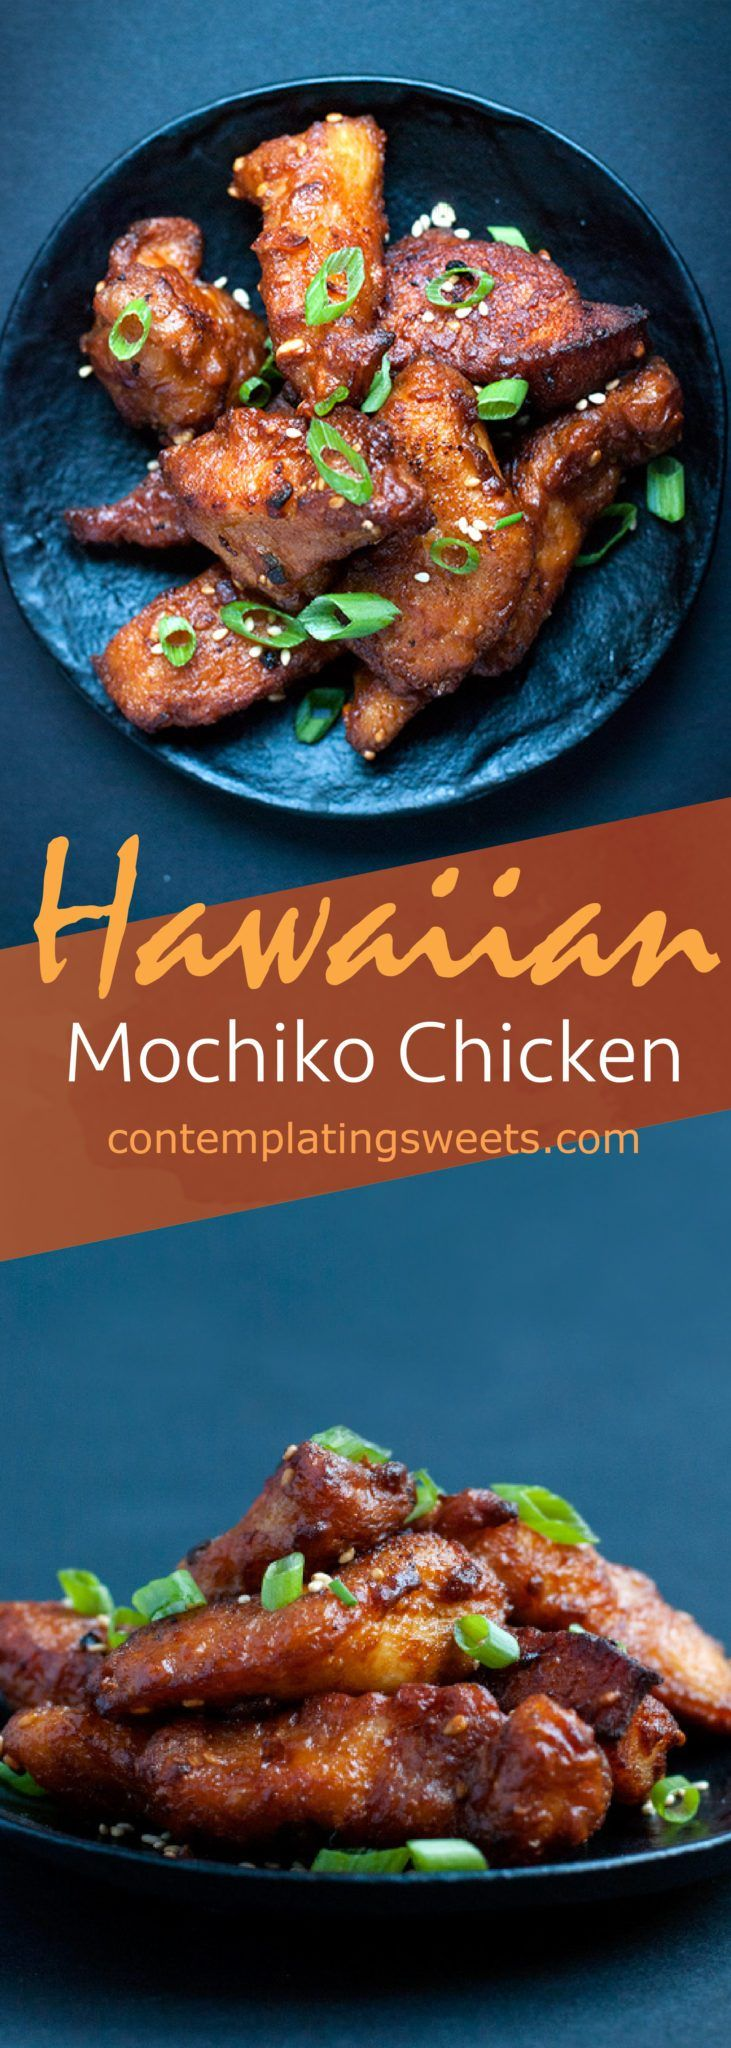 Hawaiian mochiko chicken- Mochiko chicken is a popular Hawaiian dish, where bite sized pieces of chicken are marinated in a sweet and salty sauce, and fried to perfection!